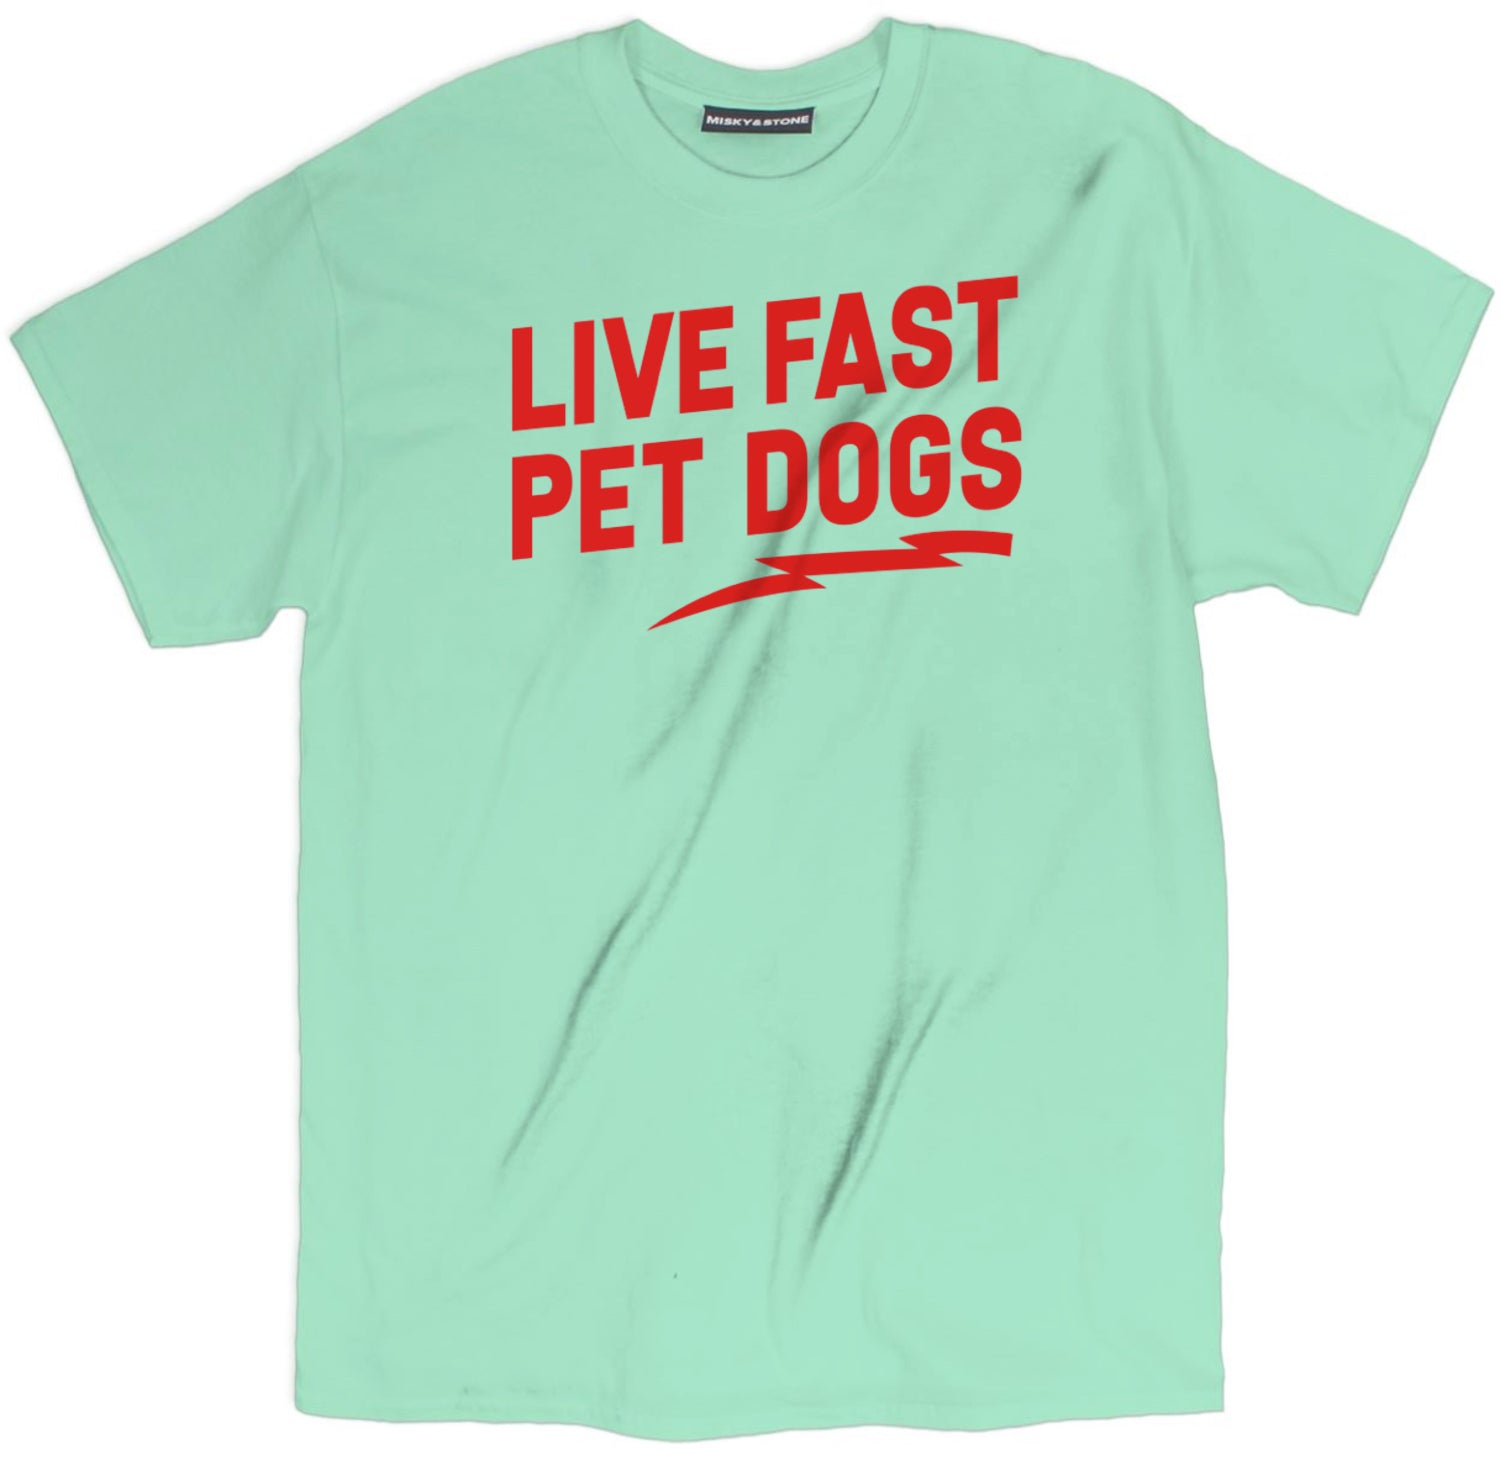 Live Fast Pet Dogs Tee